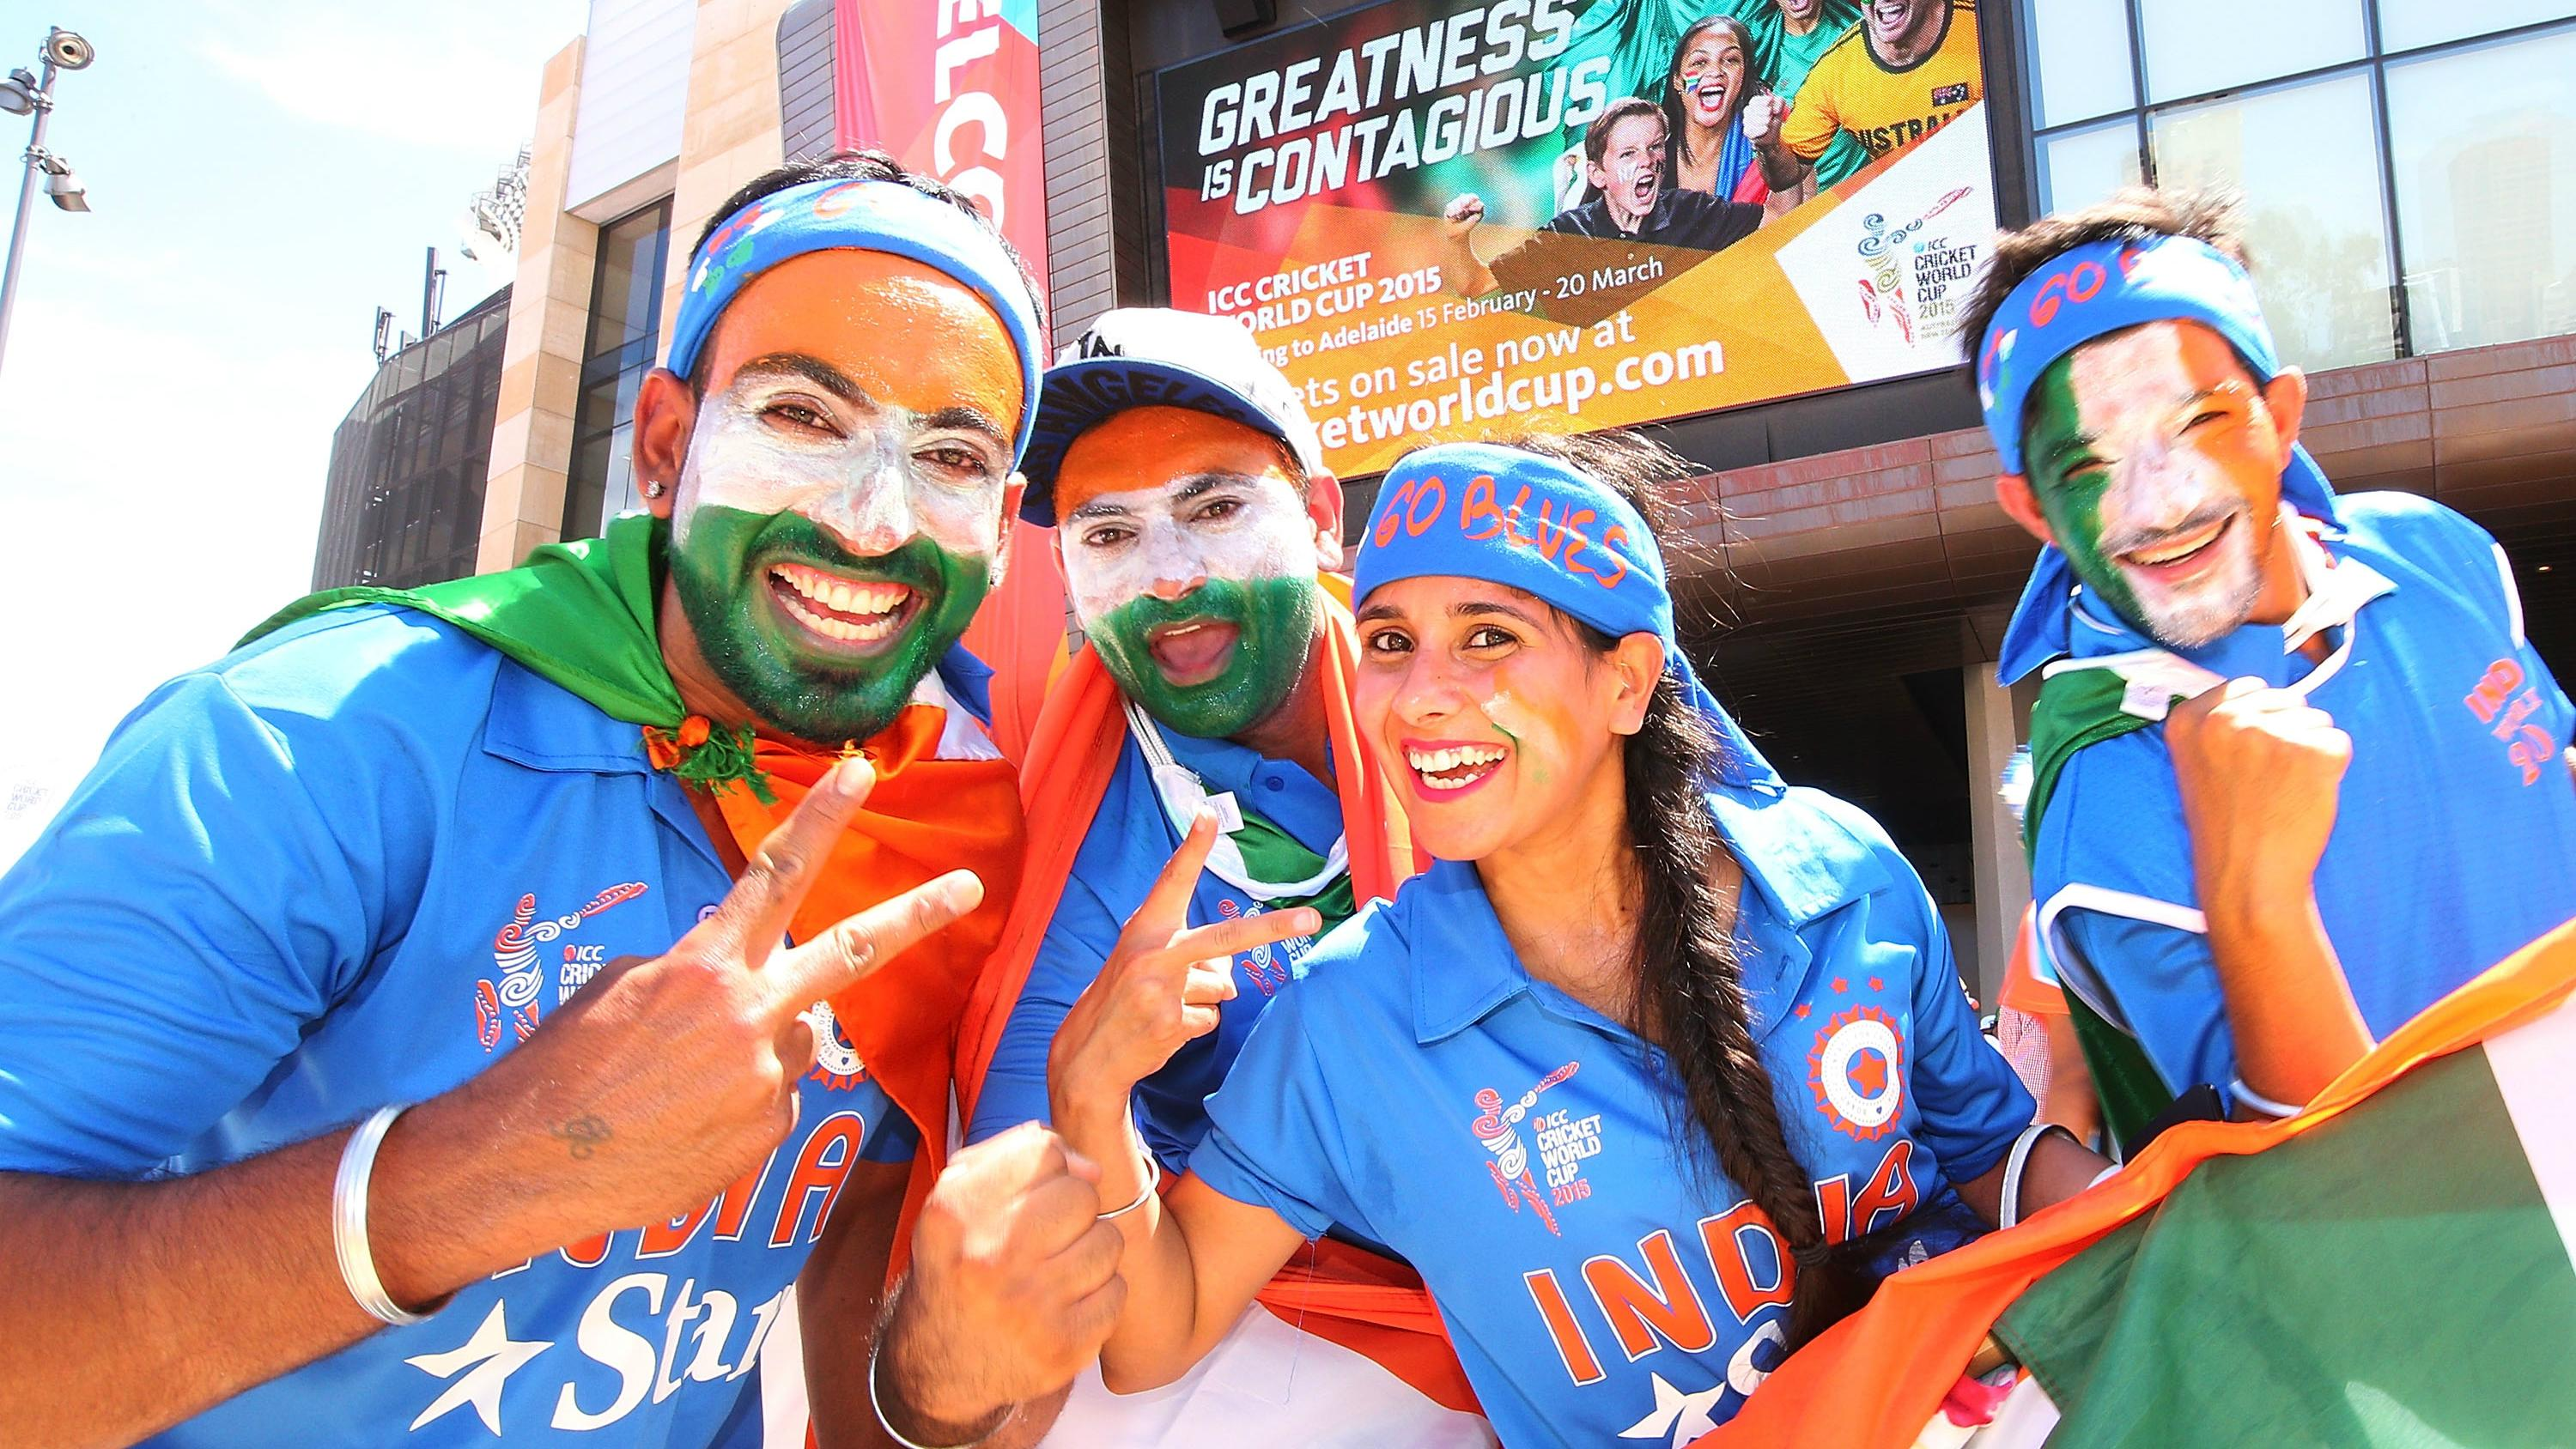 Icc Champions Trophy Travel Packages